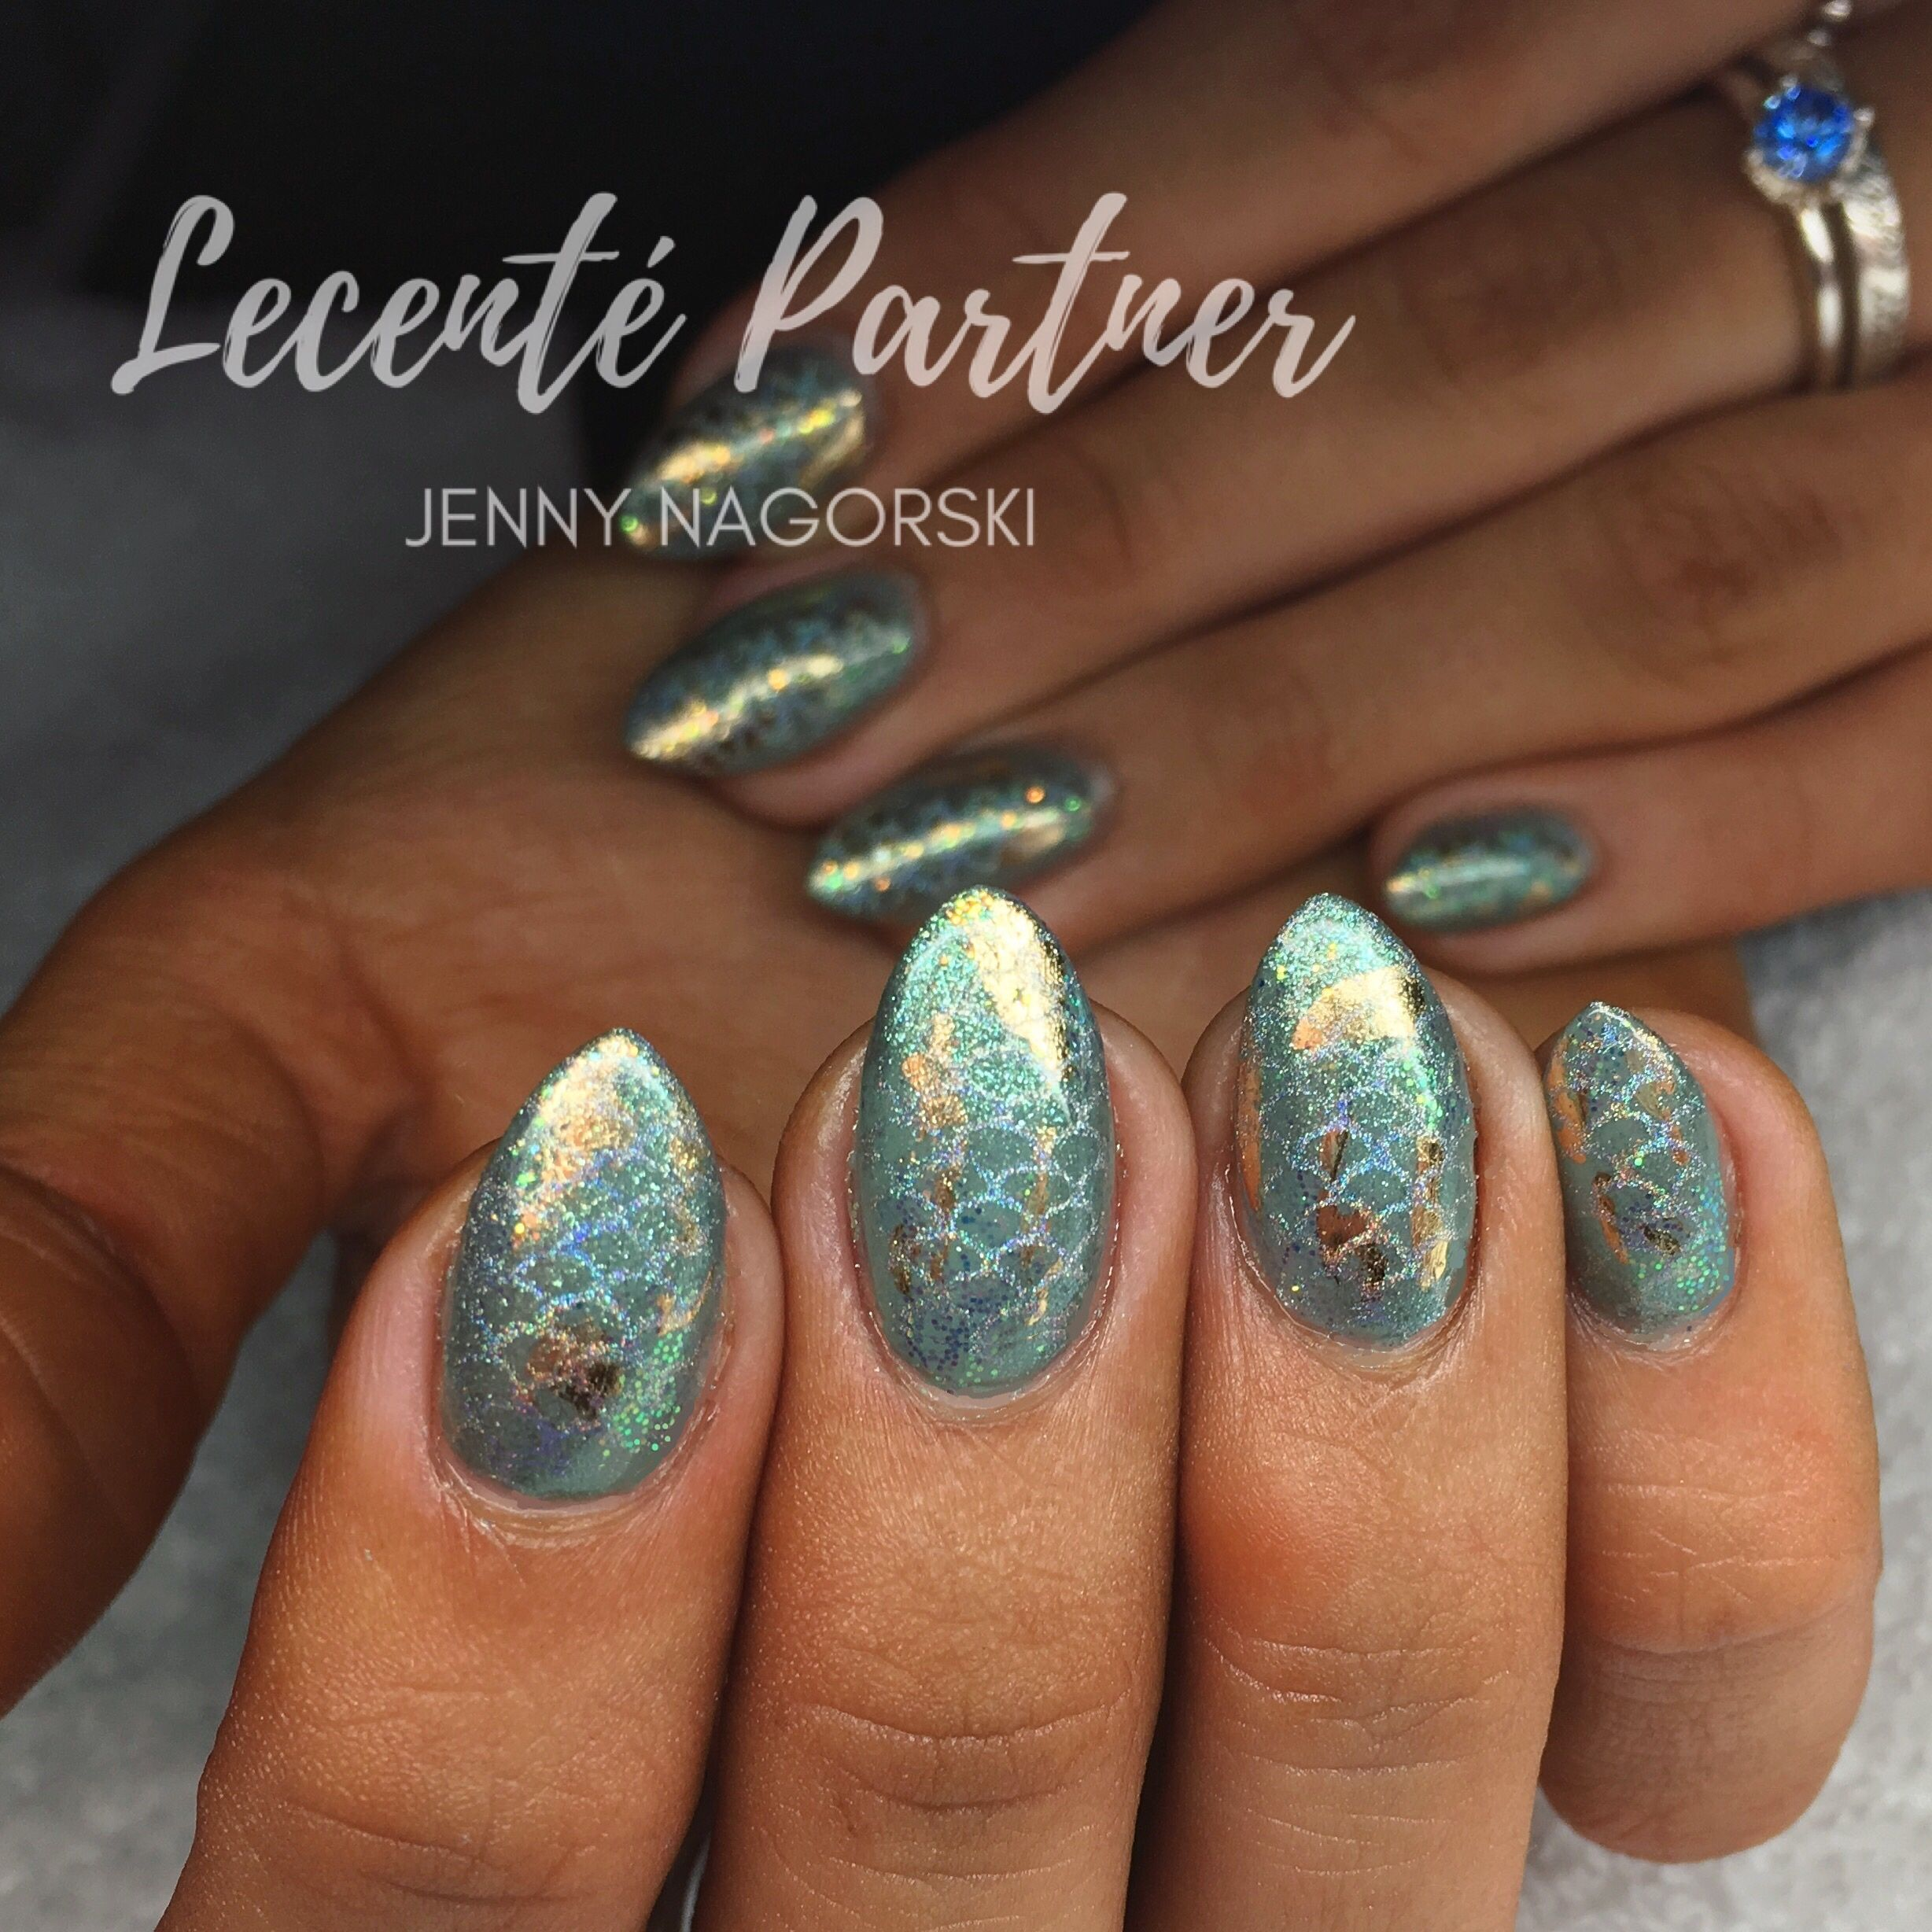 Mermaid Nails using Lecente™ Stardusts, Glitter and Foils over CND ...